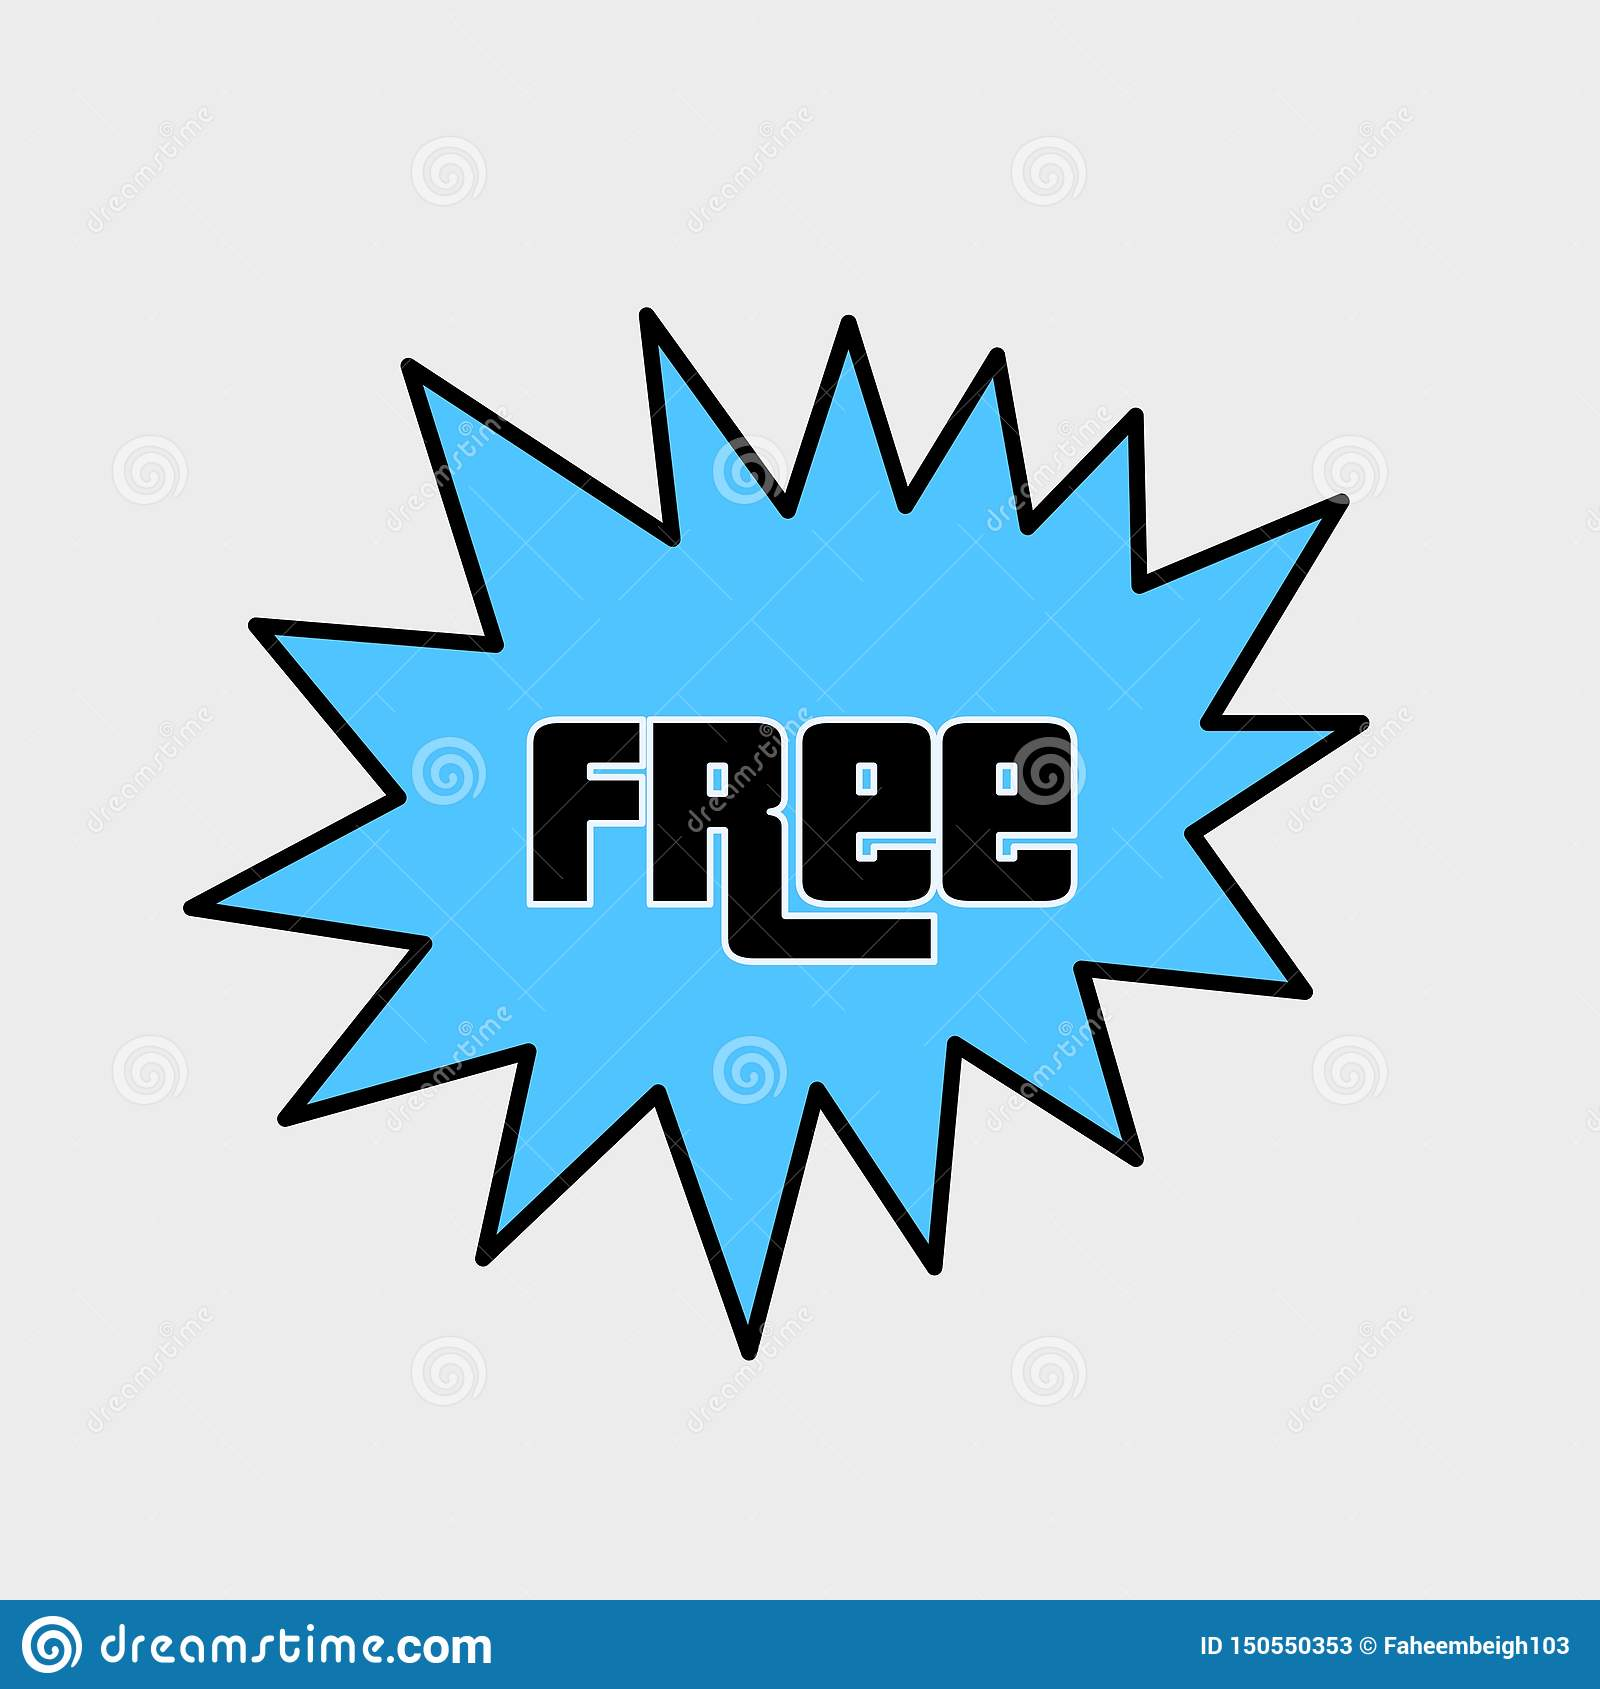 Free logo design or icon illustration clipart